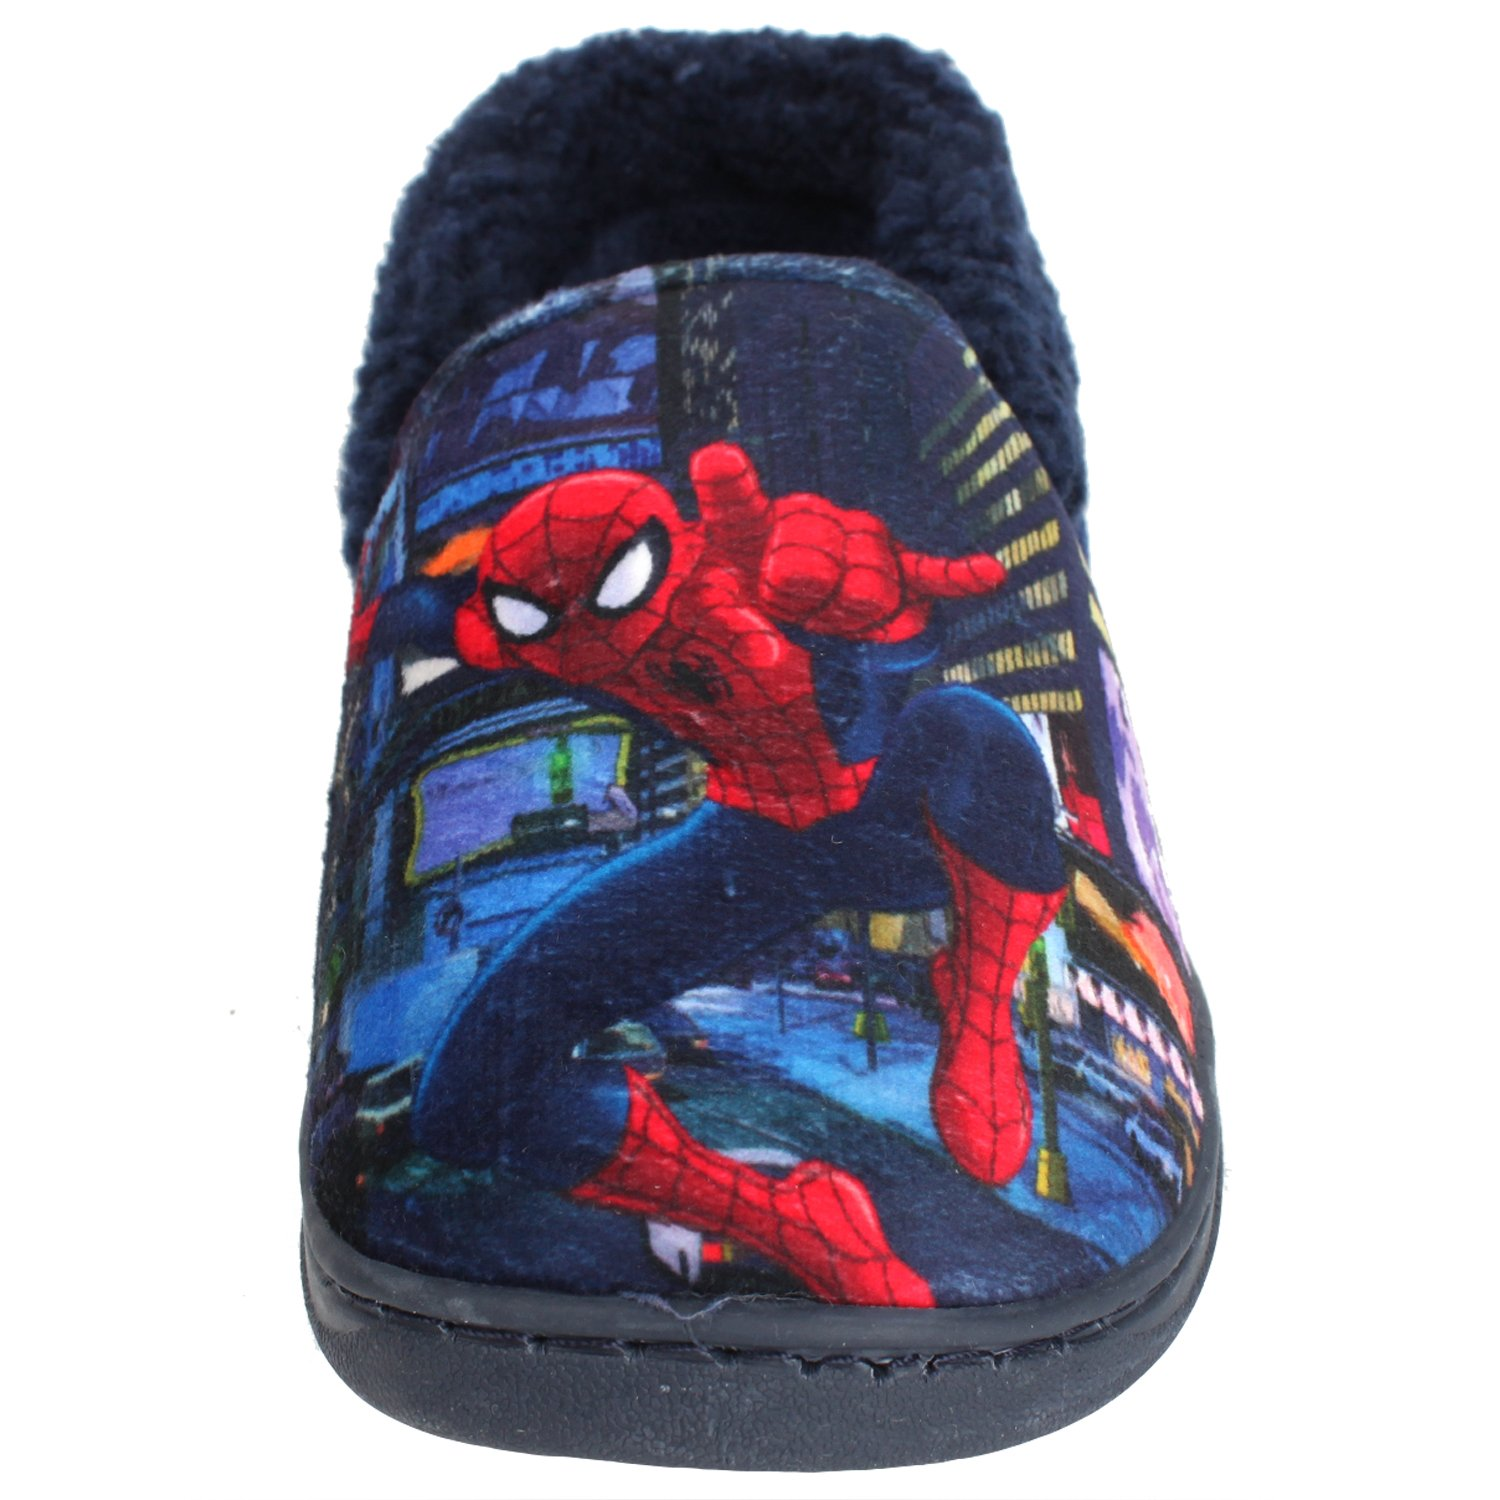 Joah Store Spider-Man Slippers for Boys Navy Red Warm Fur Clog Mule Indoor Shoes (3.5 M US Big Kid, Spider-Man) by Joah Store (Image #7)